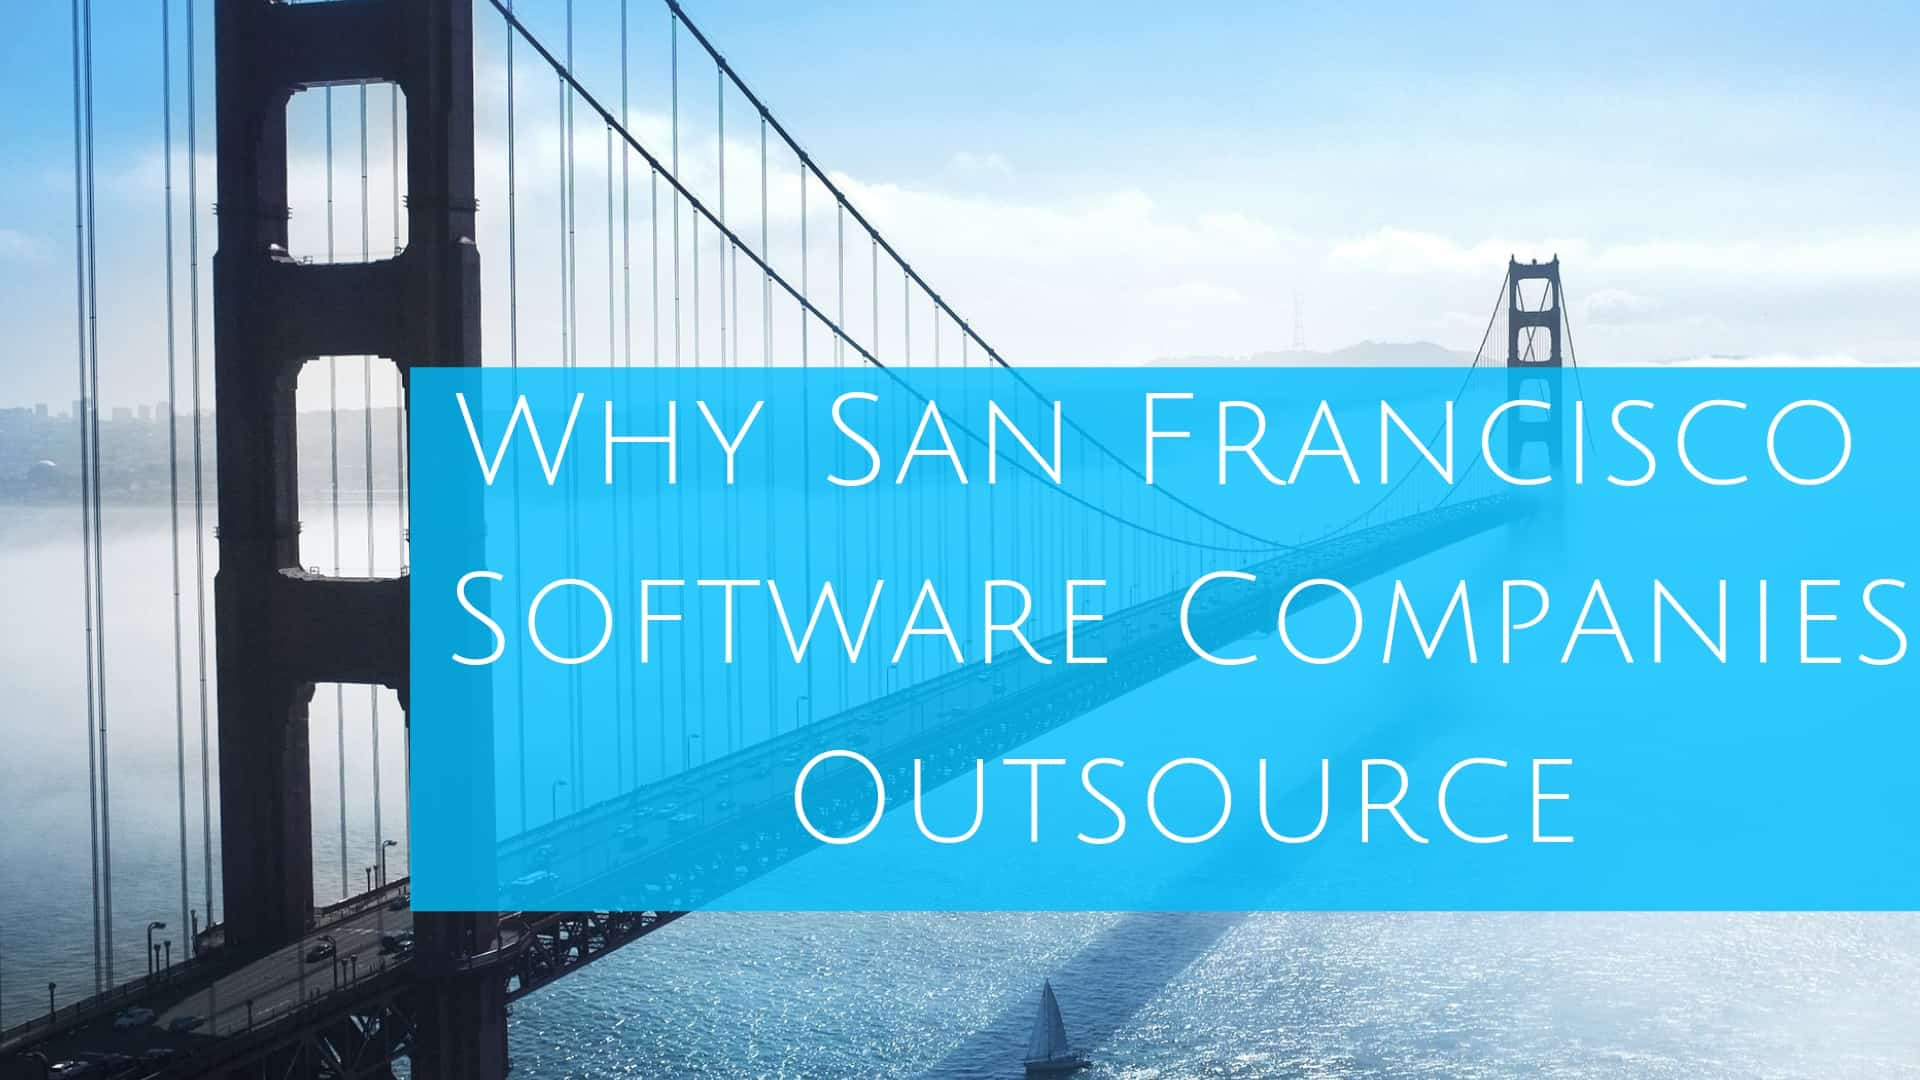 Why San Francisco Software Companies Outsource